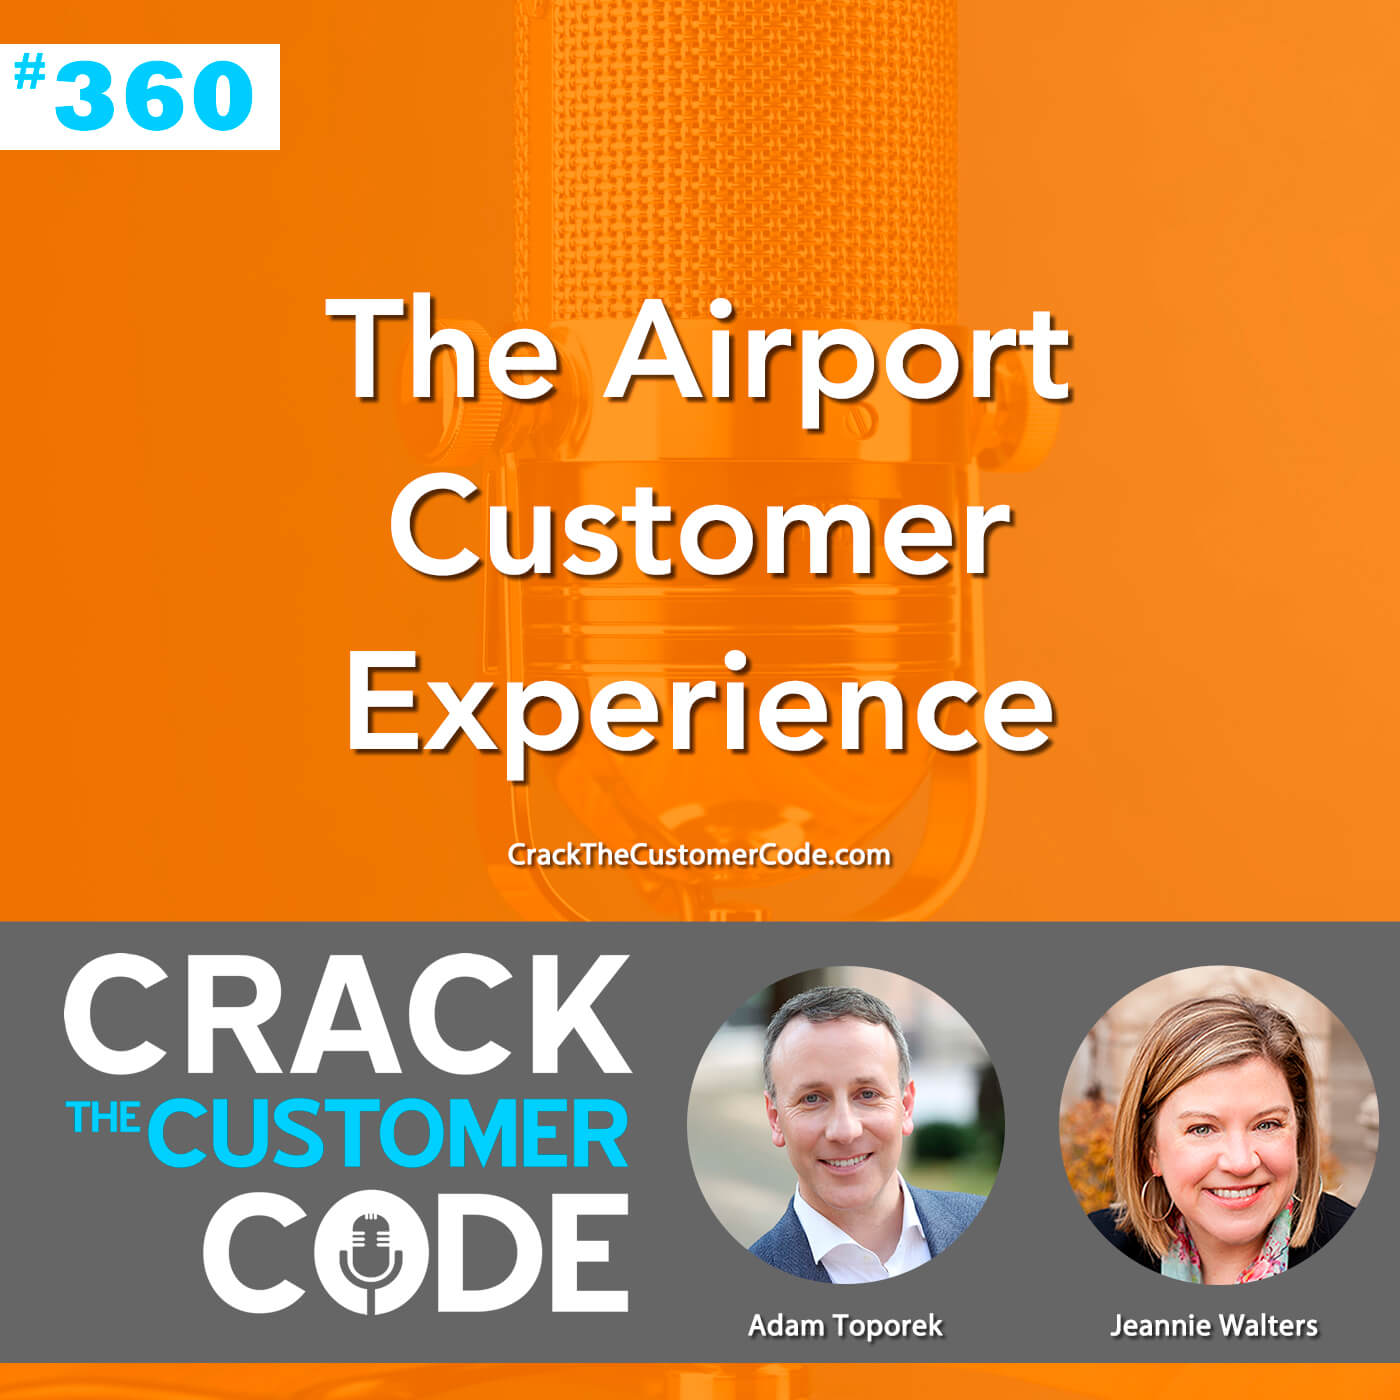 360: The Airport Customer Experience